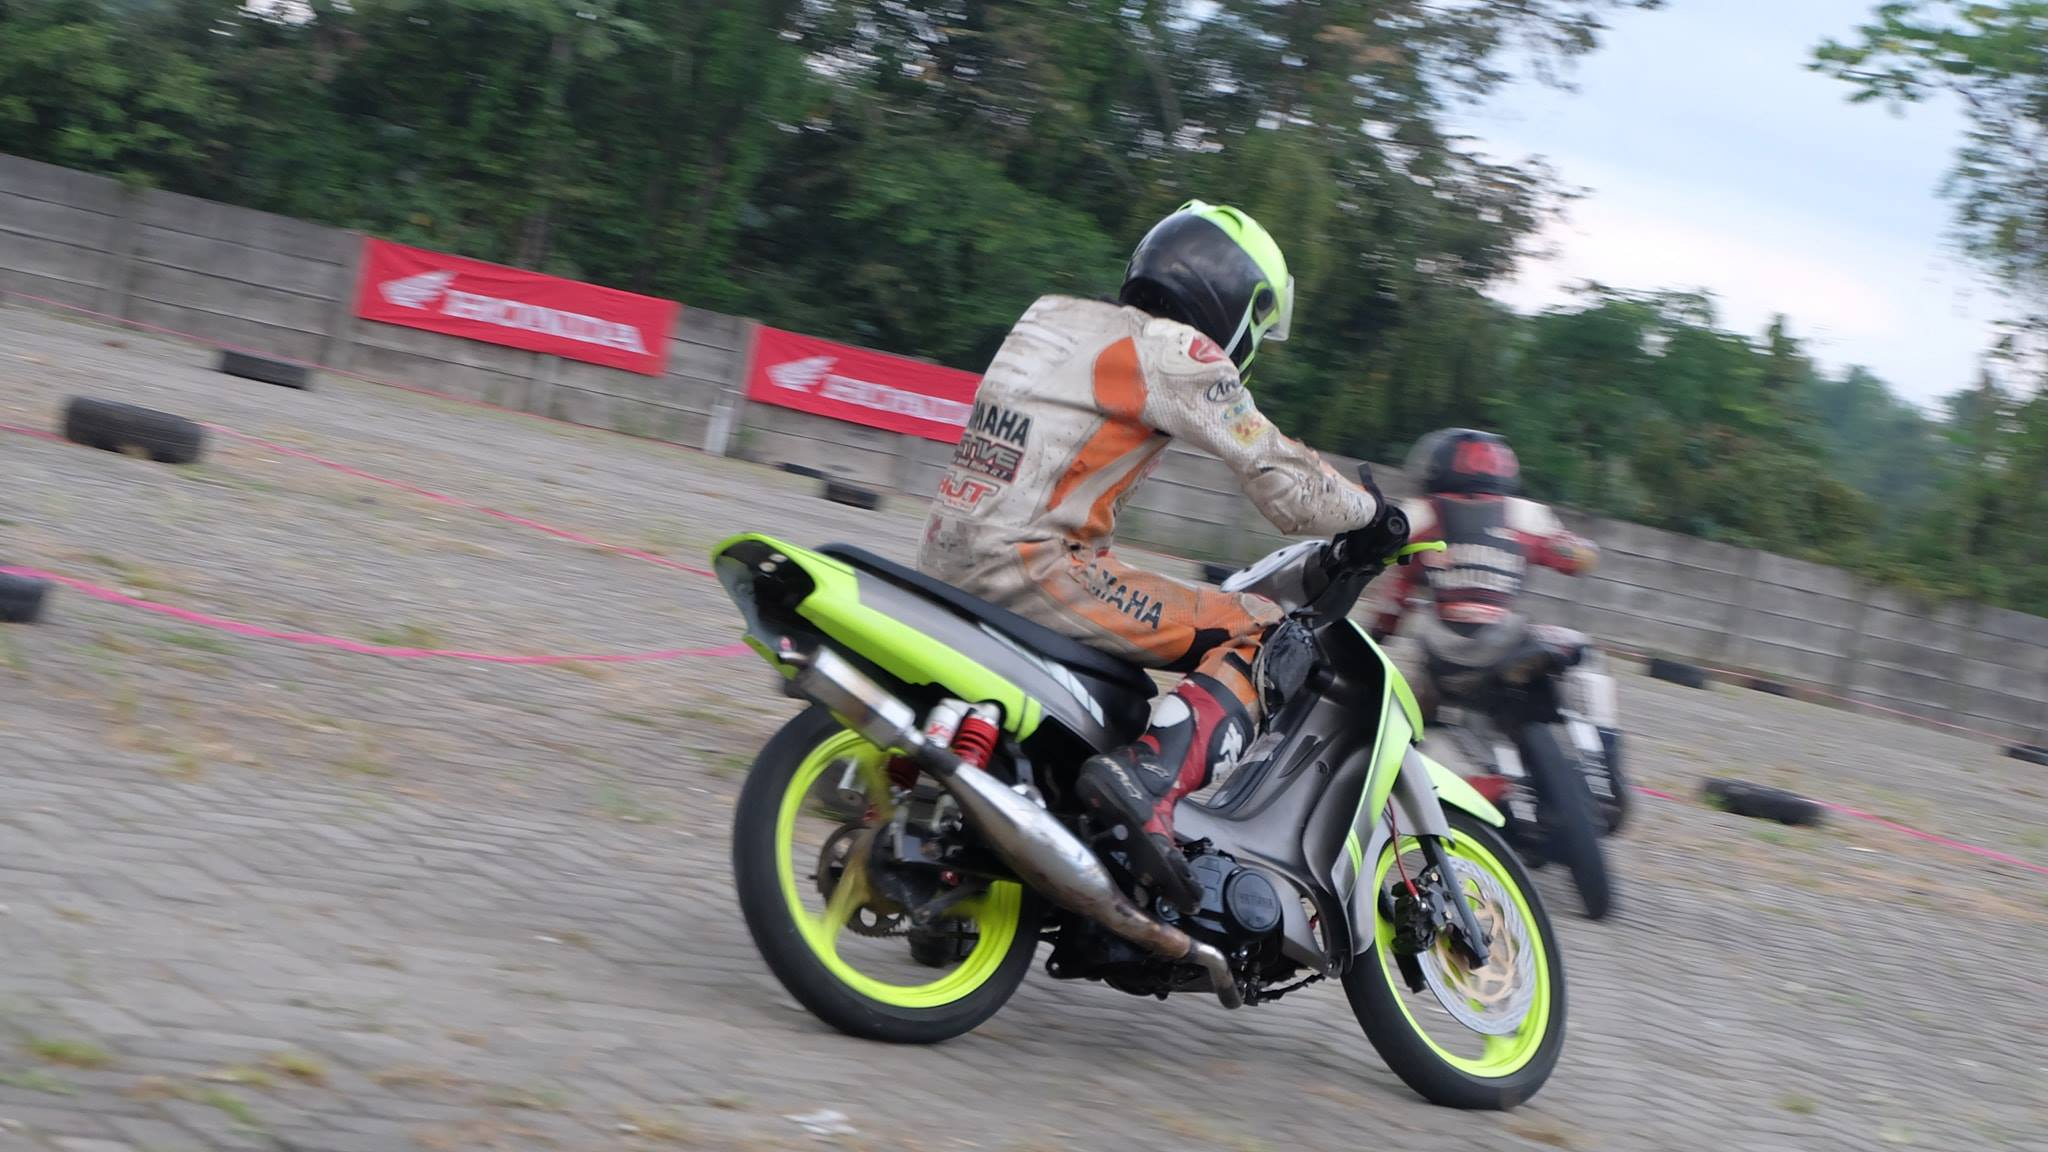 Latihan Bersama Balap Motor 2018 di Seven Dream City